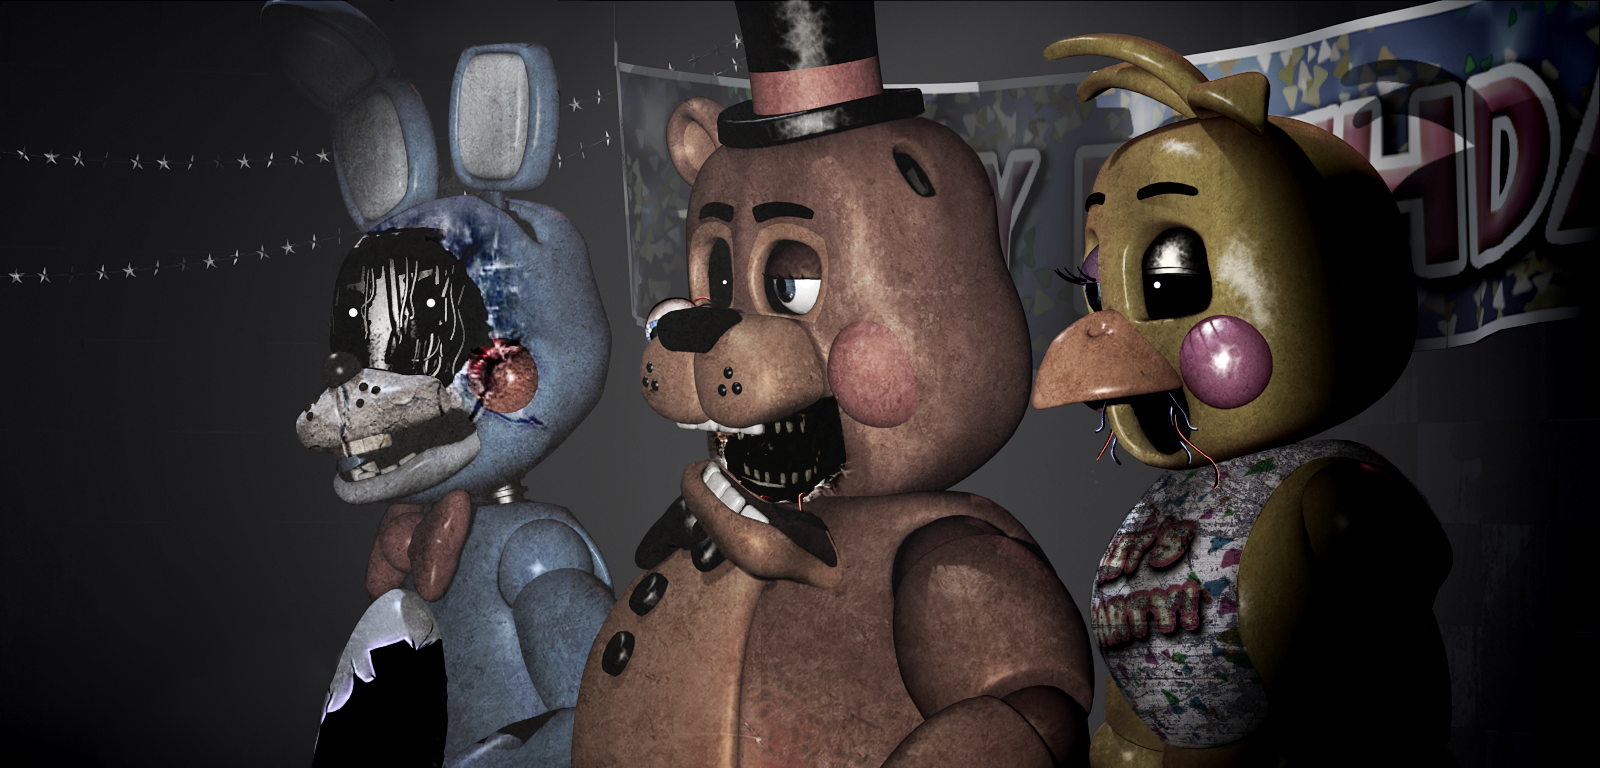 Five nights at freddys 2 toy chica images 02 by